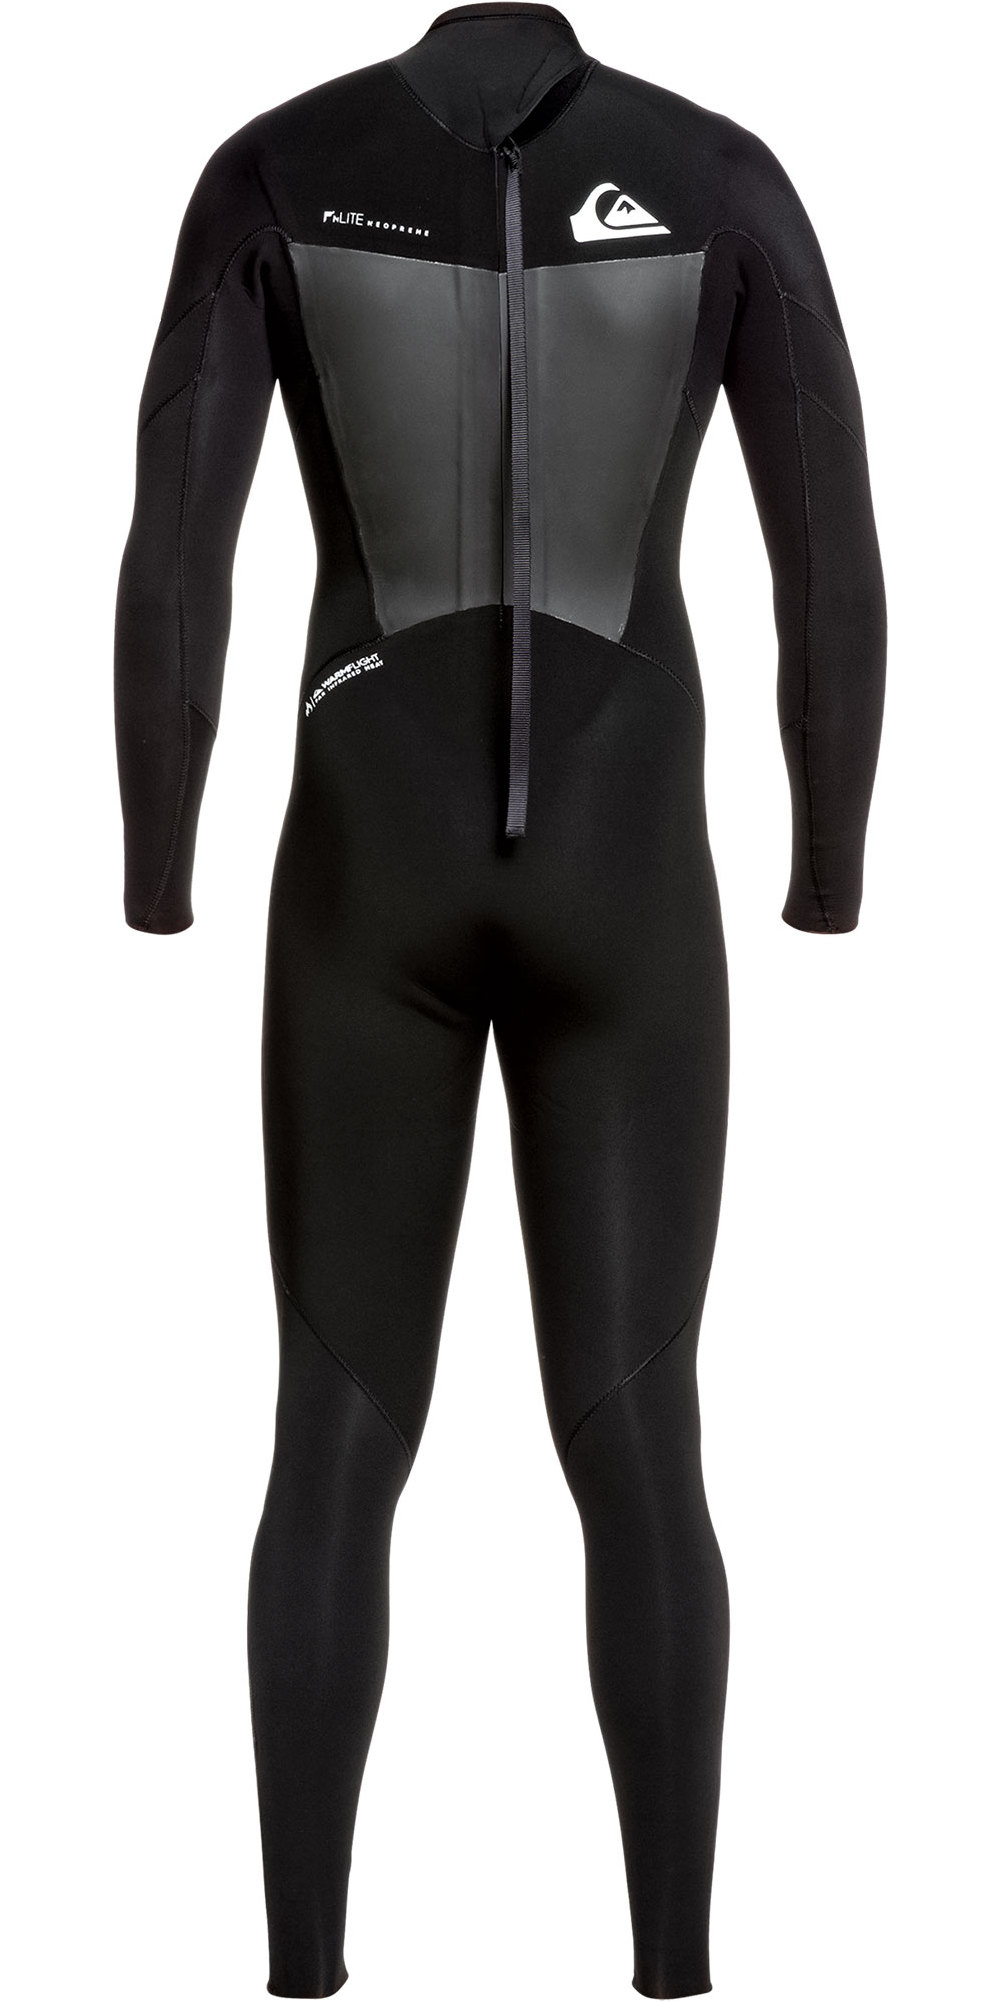 2019 Quiksilver Mens Syncro 4/3mm Back Zip Wetsuit Black / White EQYW103086